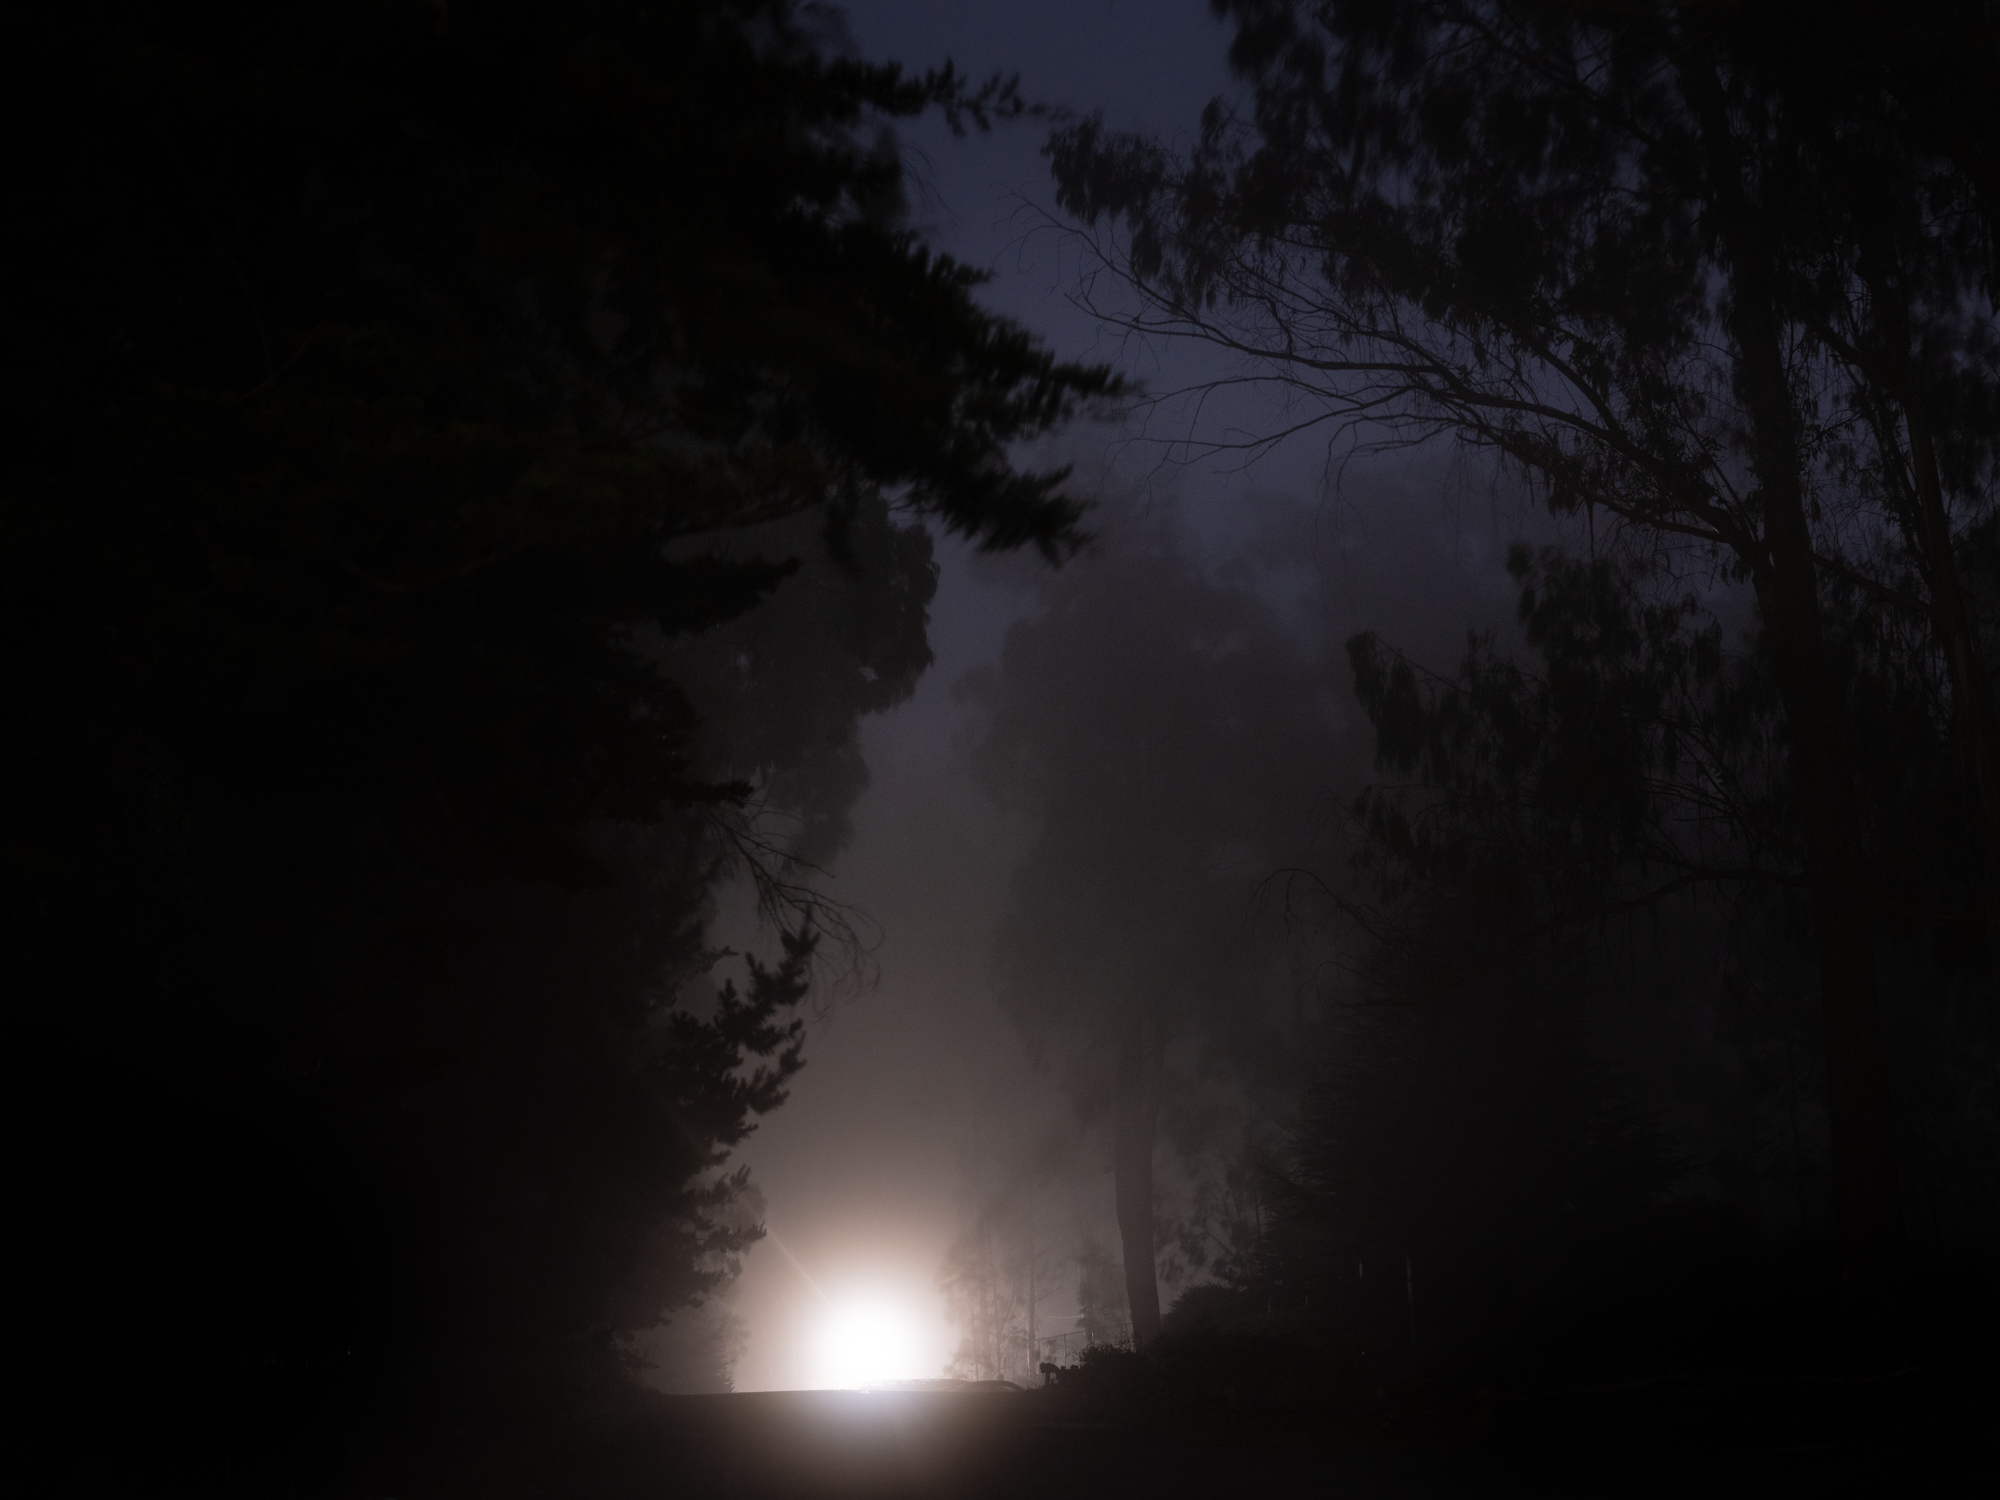 Light in background between trees at night.